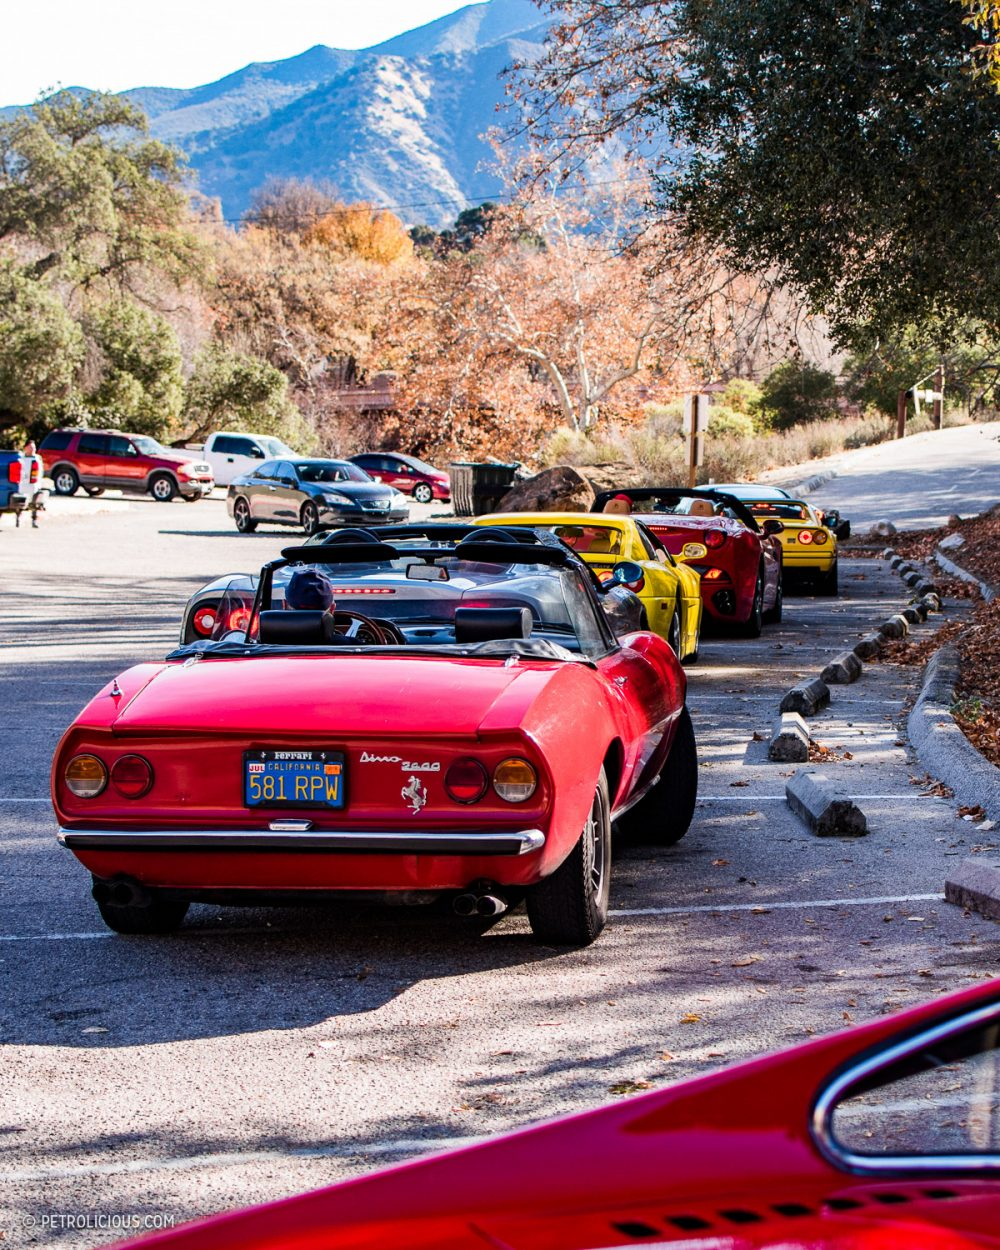 Forum on this topic: Petrolicious Takes A Closer Look At The , petrolicious-takes-a-closer-look-at-the/